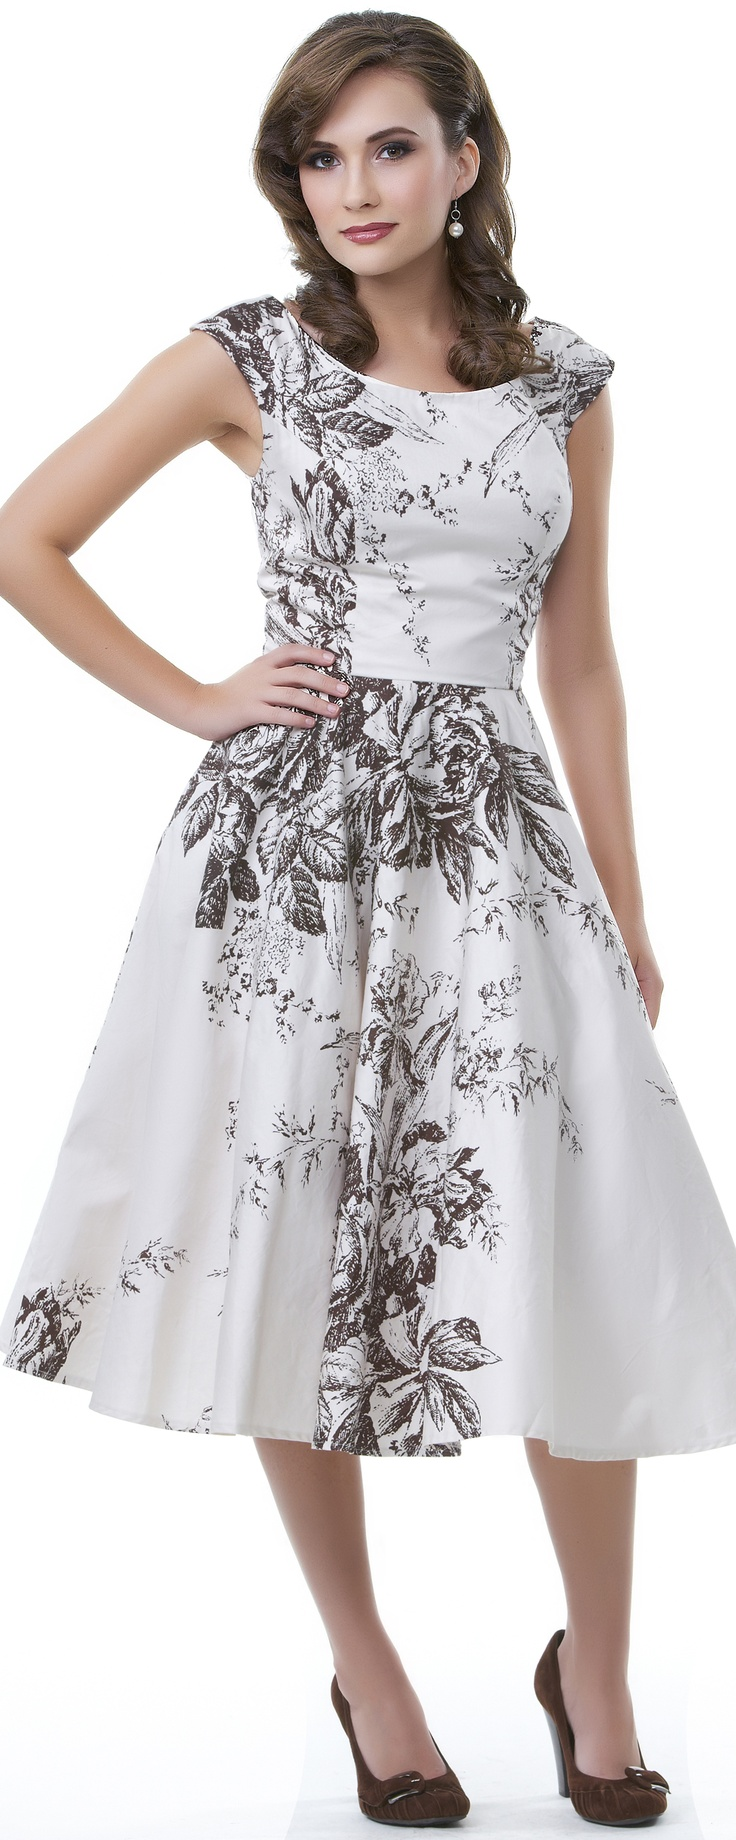 High Tea Coco Brown & Ivory Scoop Neck Dress - Unique Vintage - Pinup, Holiday & Prom Dresses.